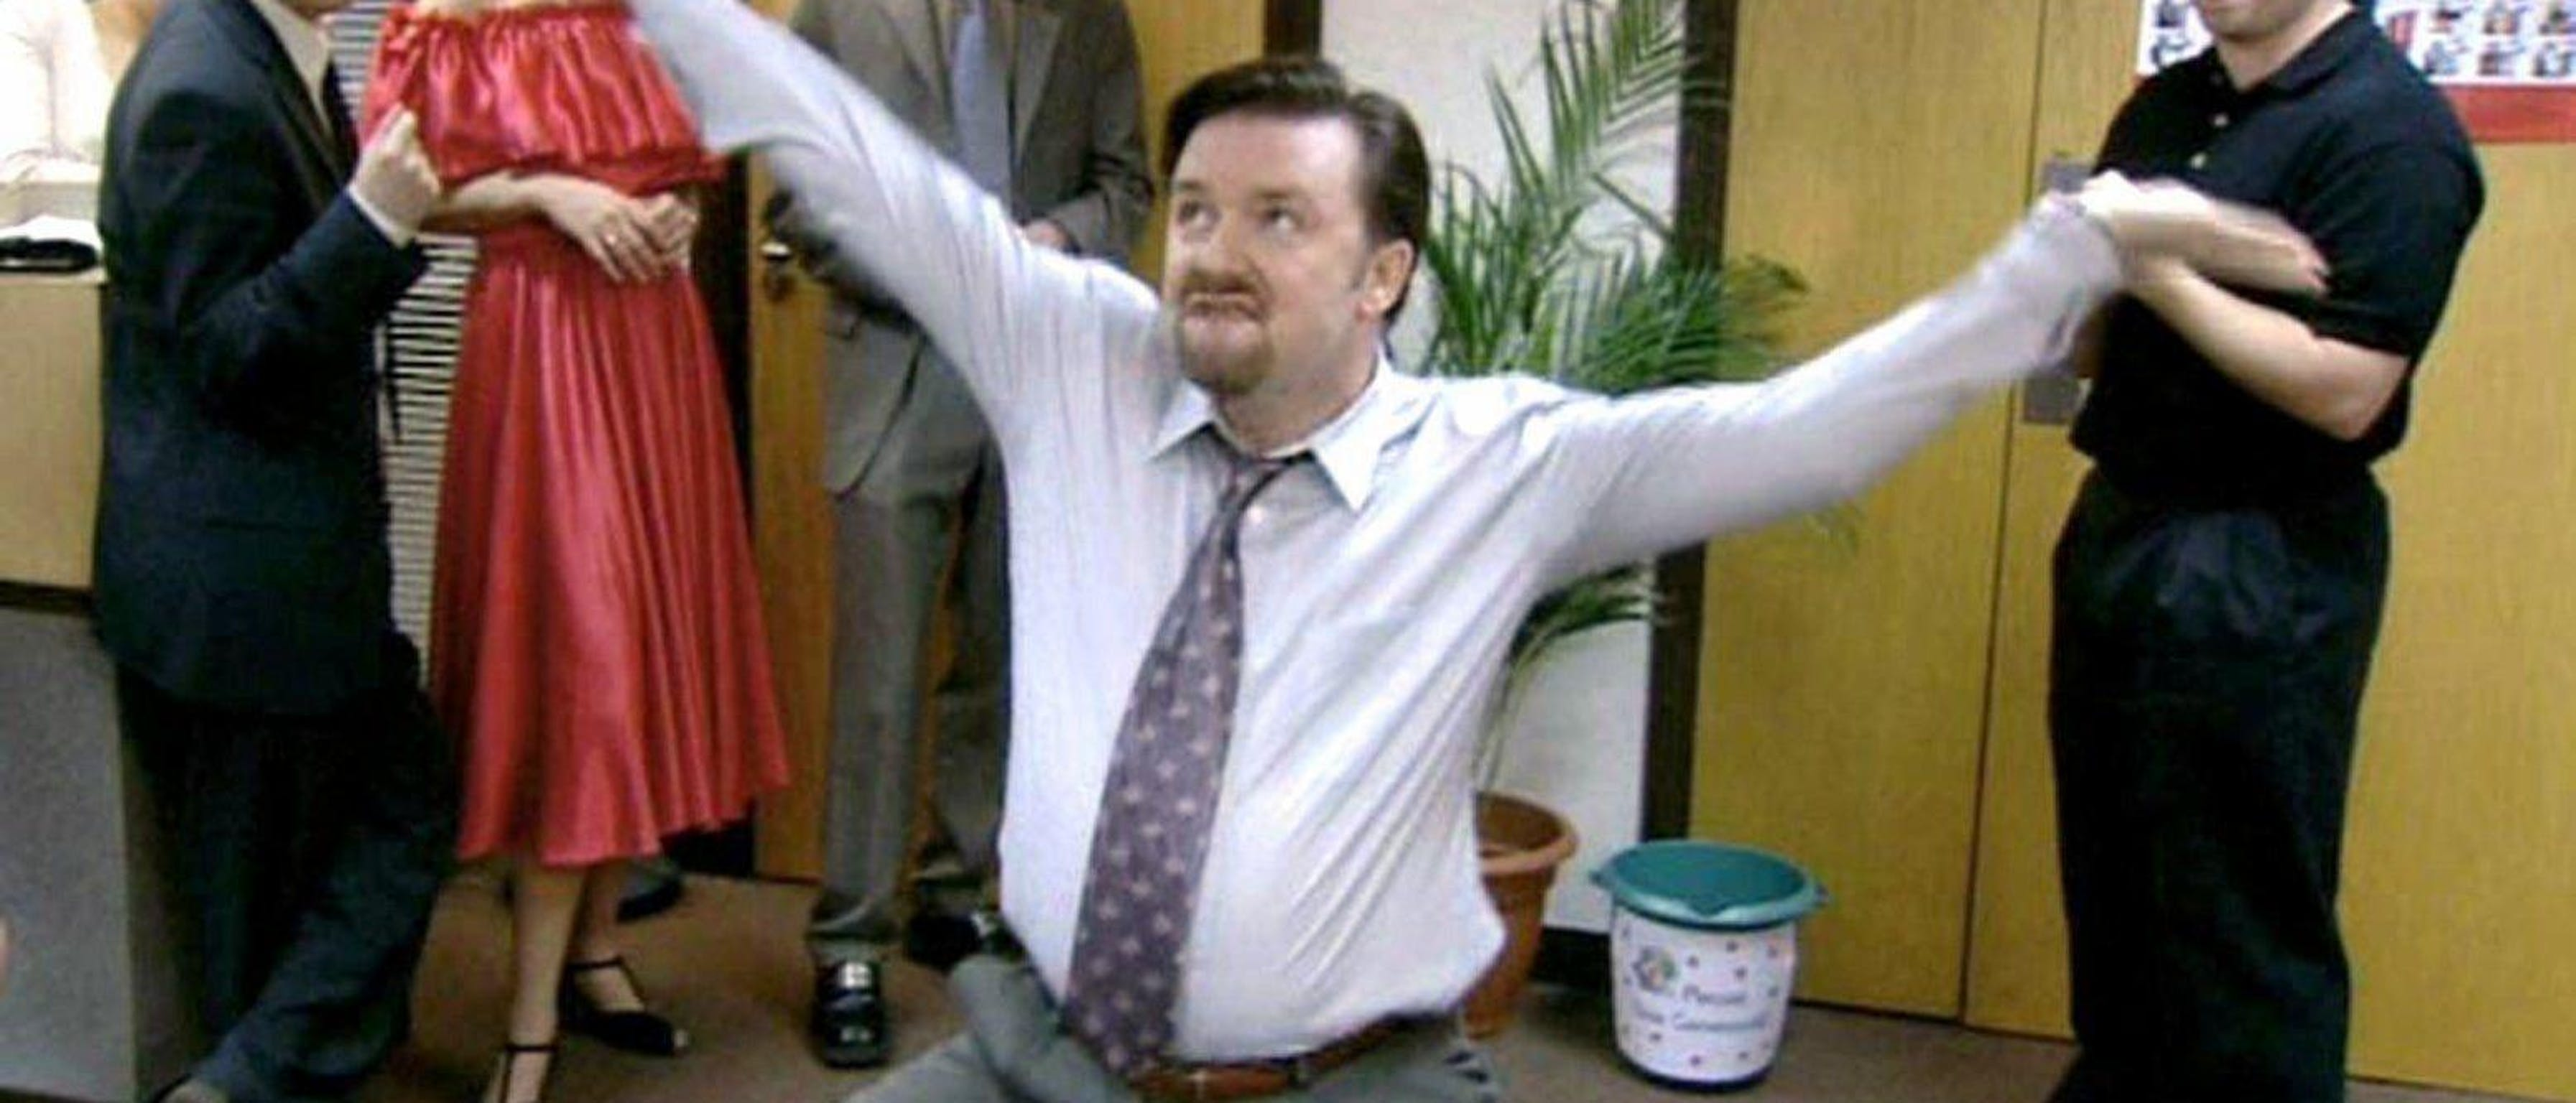 David Brent was a never serious boss.